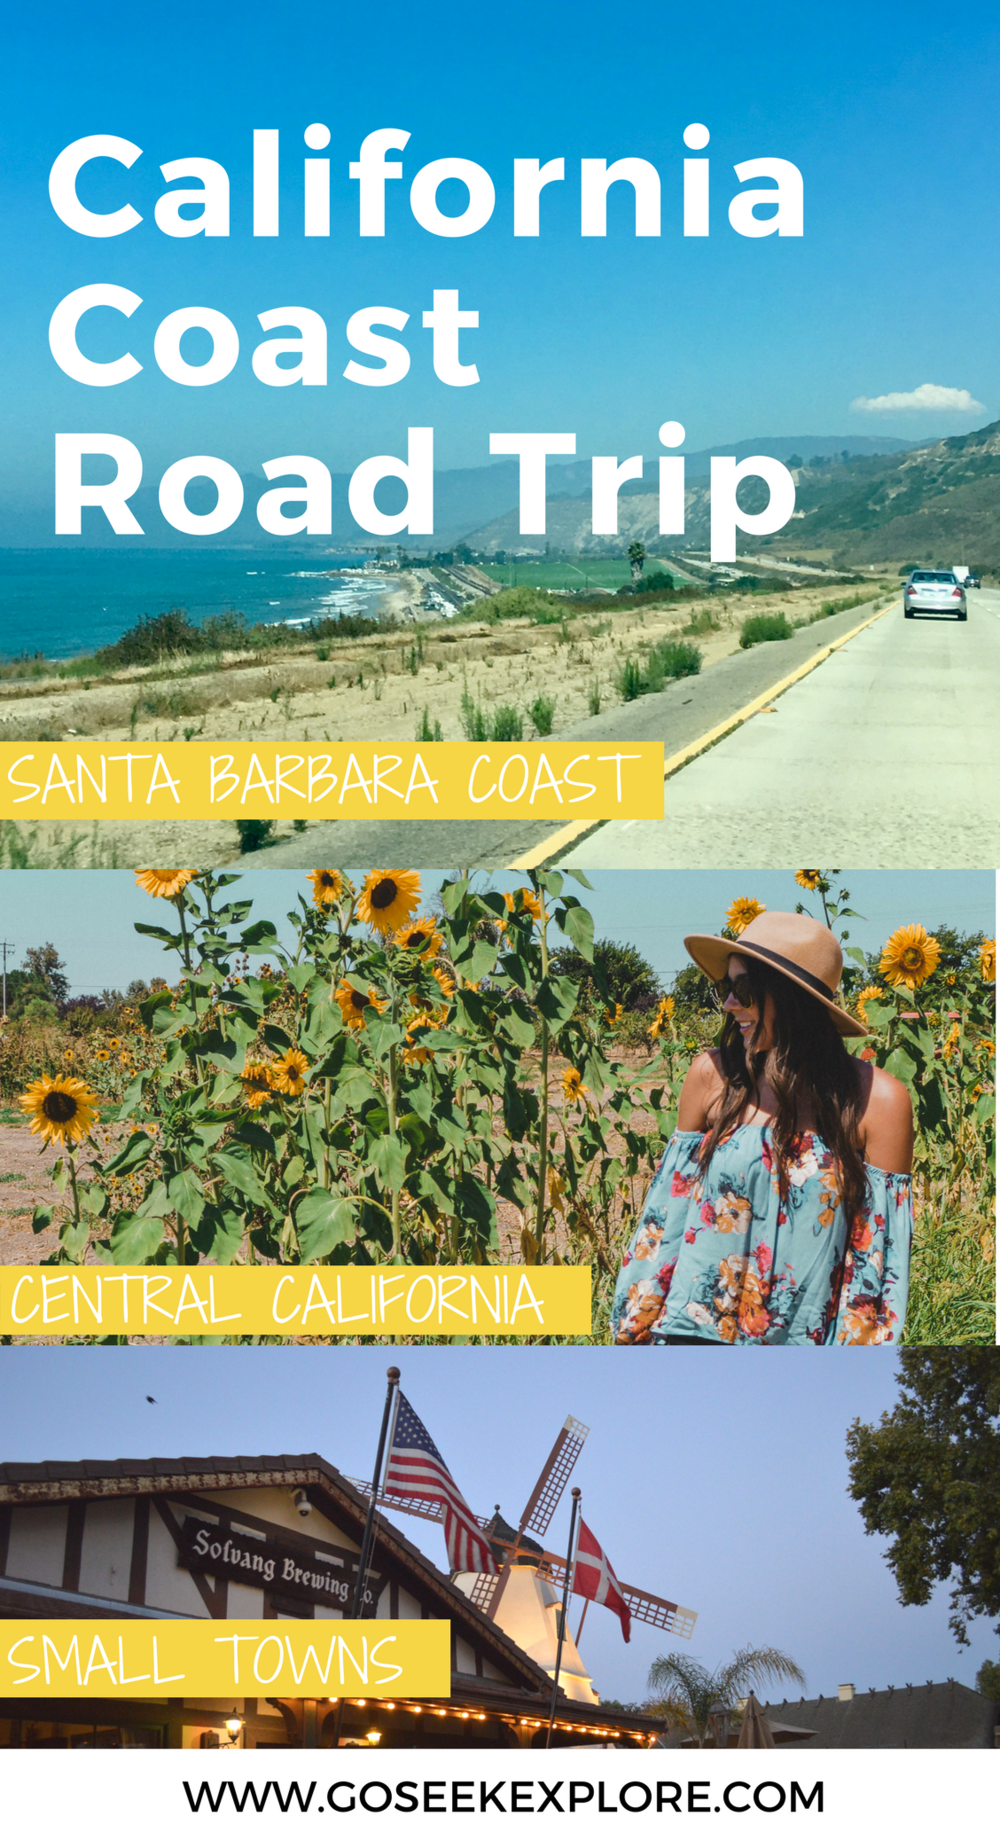 Road Tripping Central California - where to stop along the way! There are so many cute towns, wineries, and ocean views to see in California. Highly recommend traveling the California coast! Driving the California coast is out of this world. With spectacular ocean views, winding coastline, and landscapes changing from beach-y to desert to forest to wineland, there is so much to see and do as you explore the California coast.  I celebrated my birthday a couple of weeks ago, and one of the things I did to celebrate was take a road trip from Southern California up to Central California with my friend Jessica, driving from San Diego to San Luis Obispo!  ...All in one day.  We hit the PCH (Pacific Coast Highway) eaaaarly in the morning with the intention that we'd stop in Santa Barbara on the way back. It was a LOT of driving but still plenty of fun.  If you're looking to do a similar drive yourself I'd recommend spending the night up north to allow yourself more time for stops along the way.